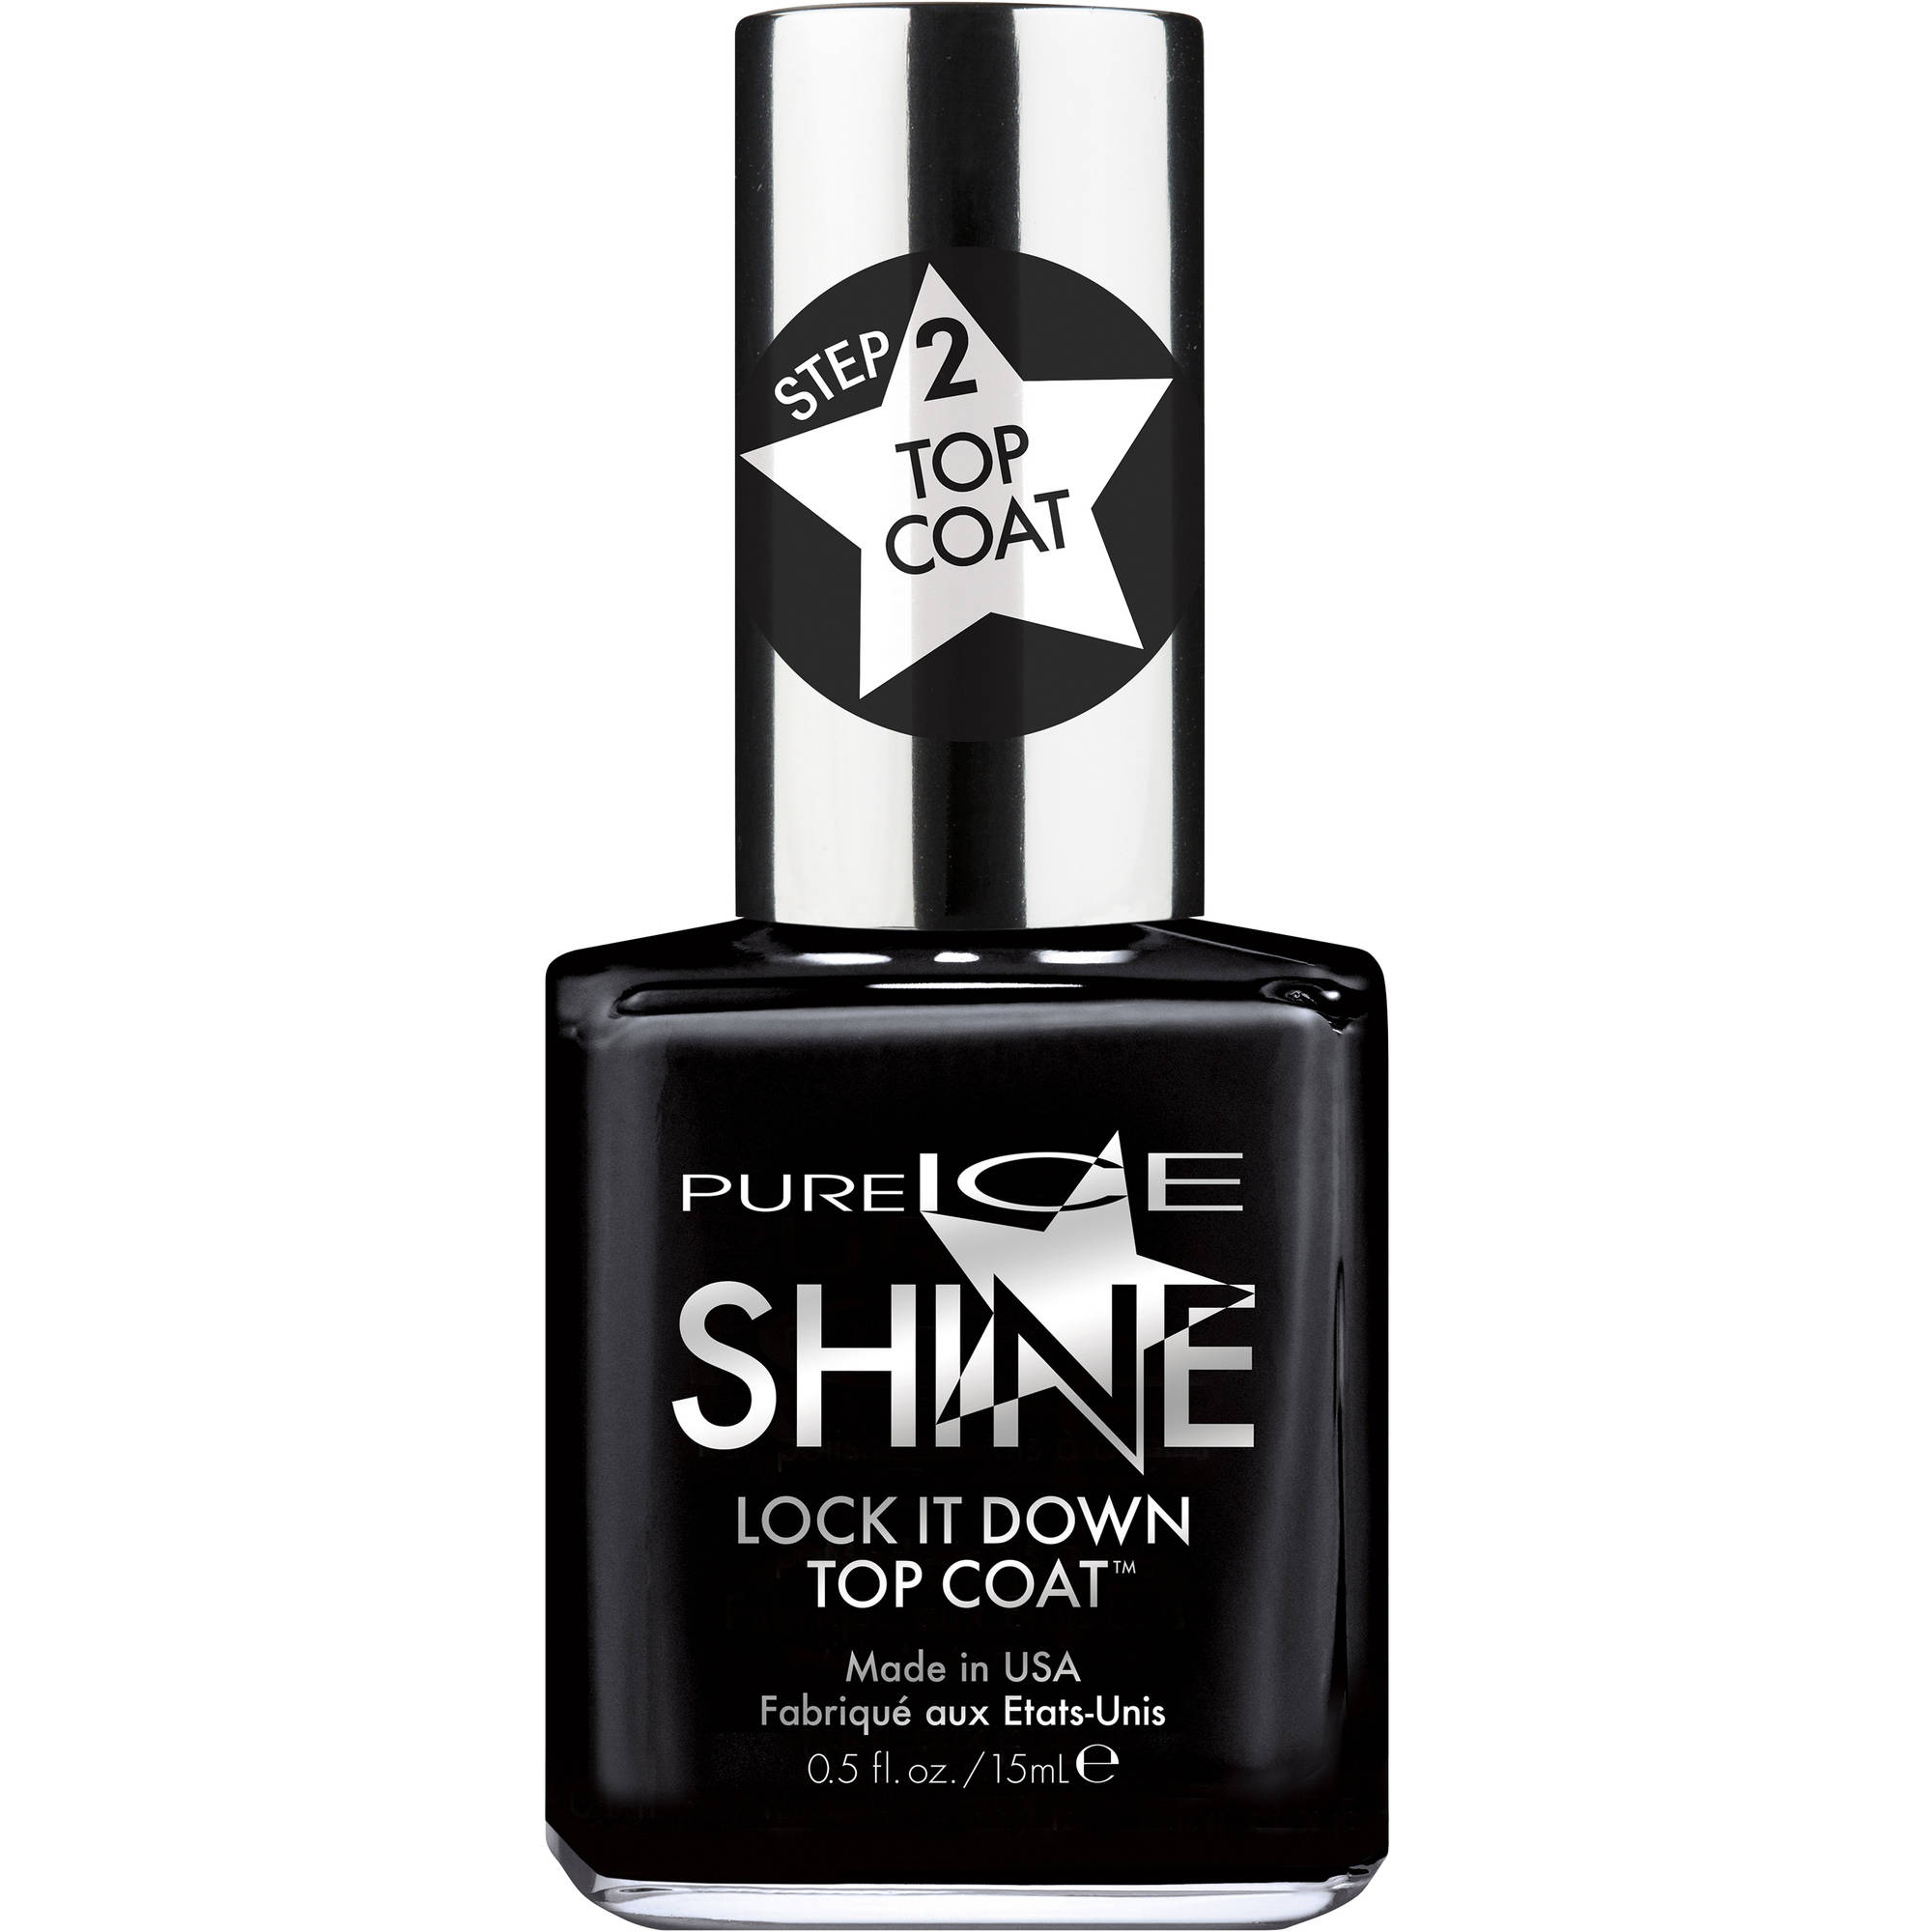 Pure Ice Shine Lock It Down Top Coat Nail Polish, 0.5 fl oz